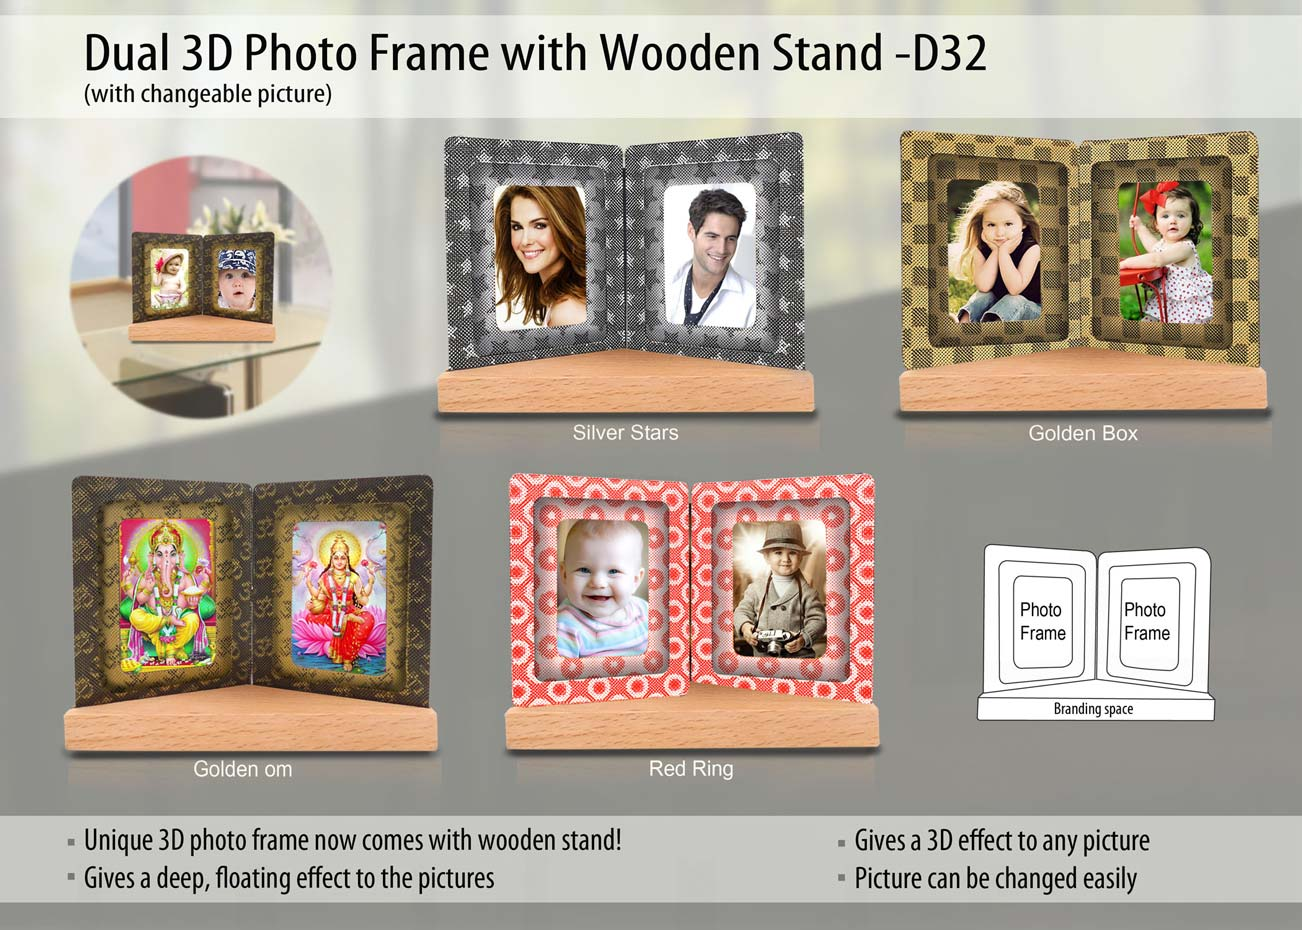 D32 - Dual 3D photo frame with wooden stand (in gift box)